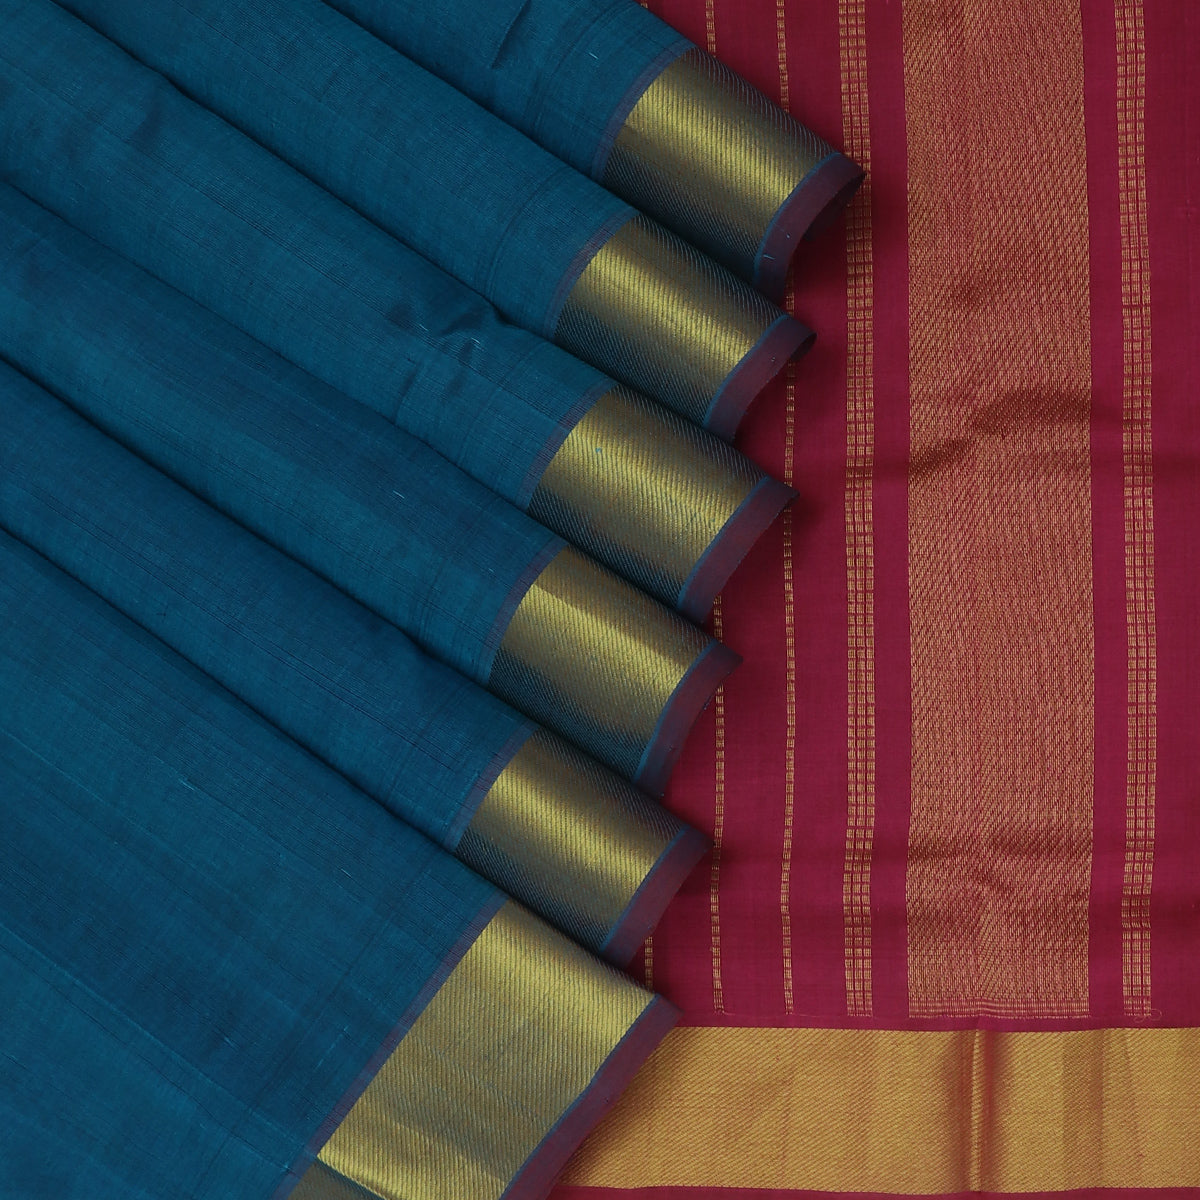 Silk Cotton Saree Peacock Blue and Violet with Zari border 9 Yards